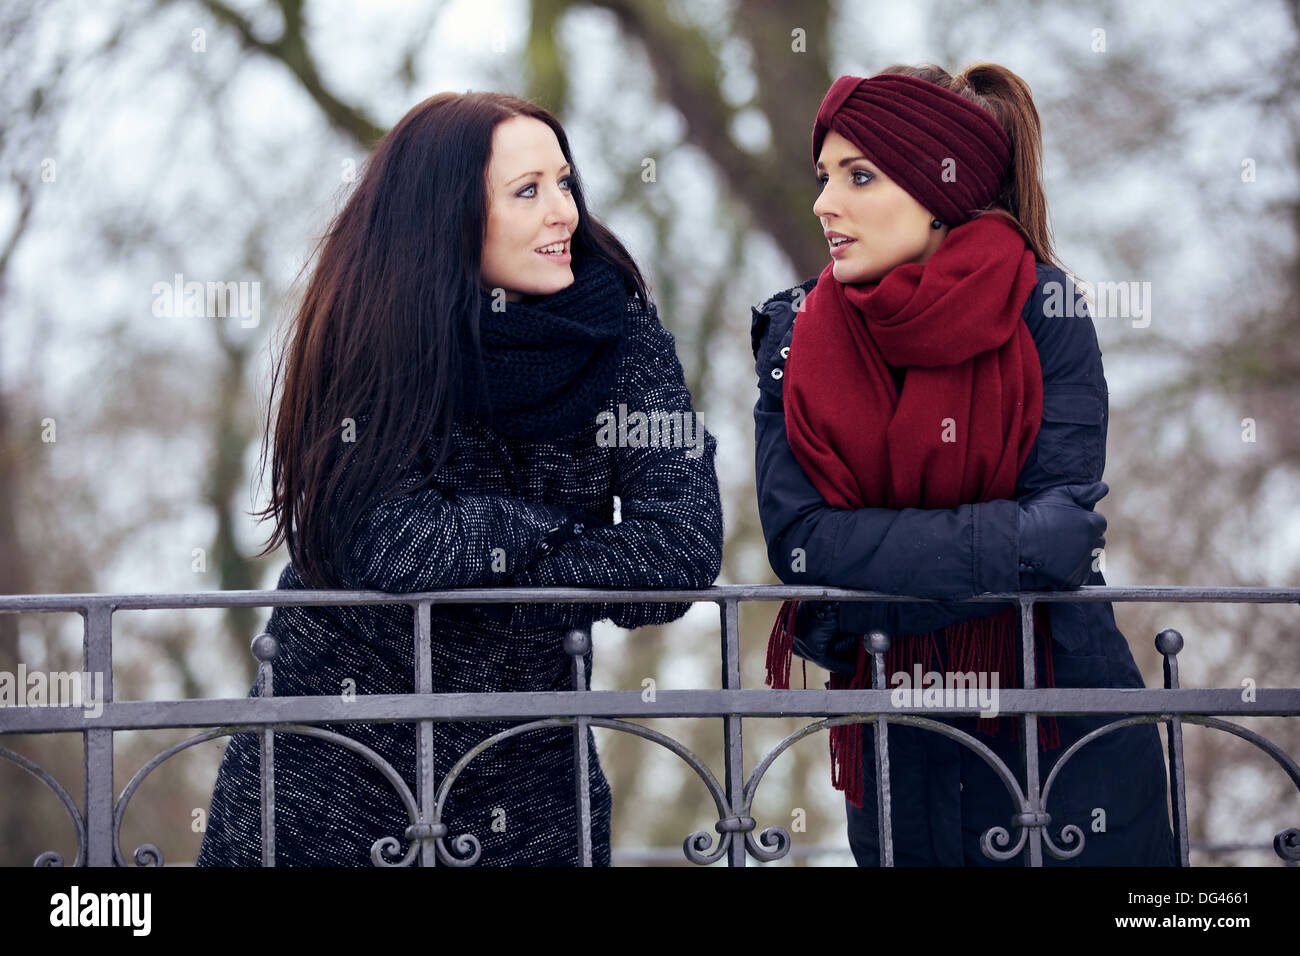 Relaxed women in the park having a serious conversation - Stock Image